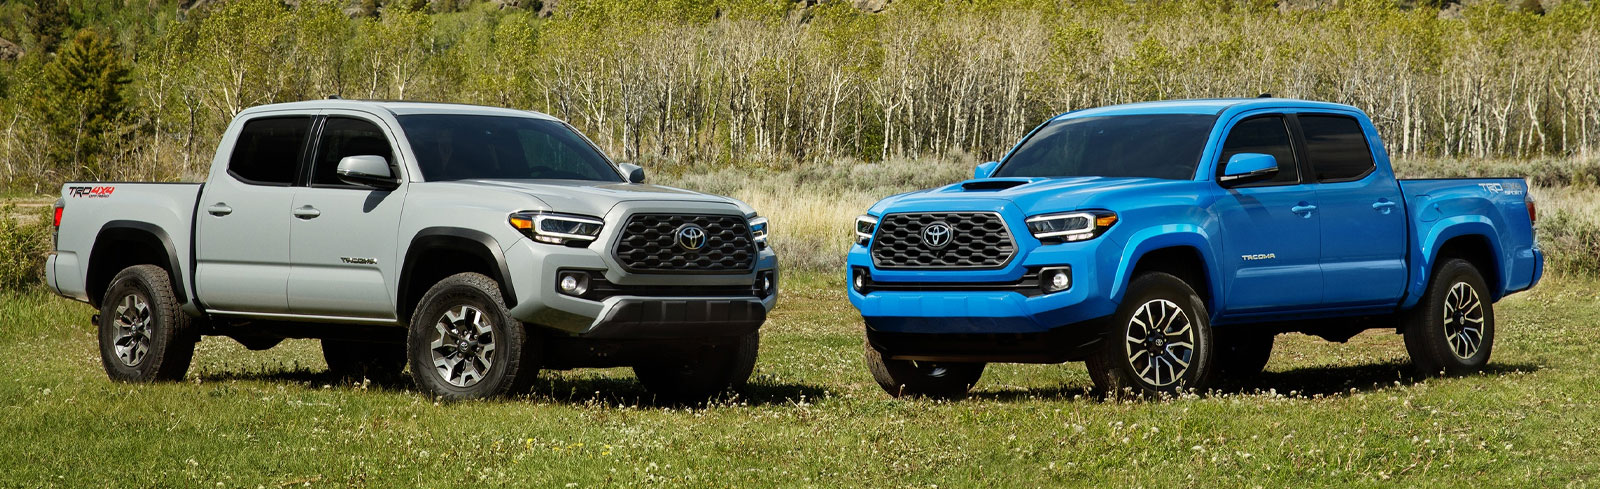 All New 2020 Toyota Tacoma for Sale at Future Toyota of Yuba City